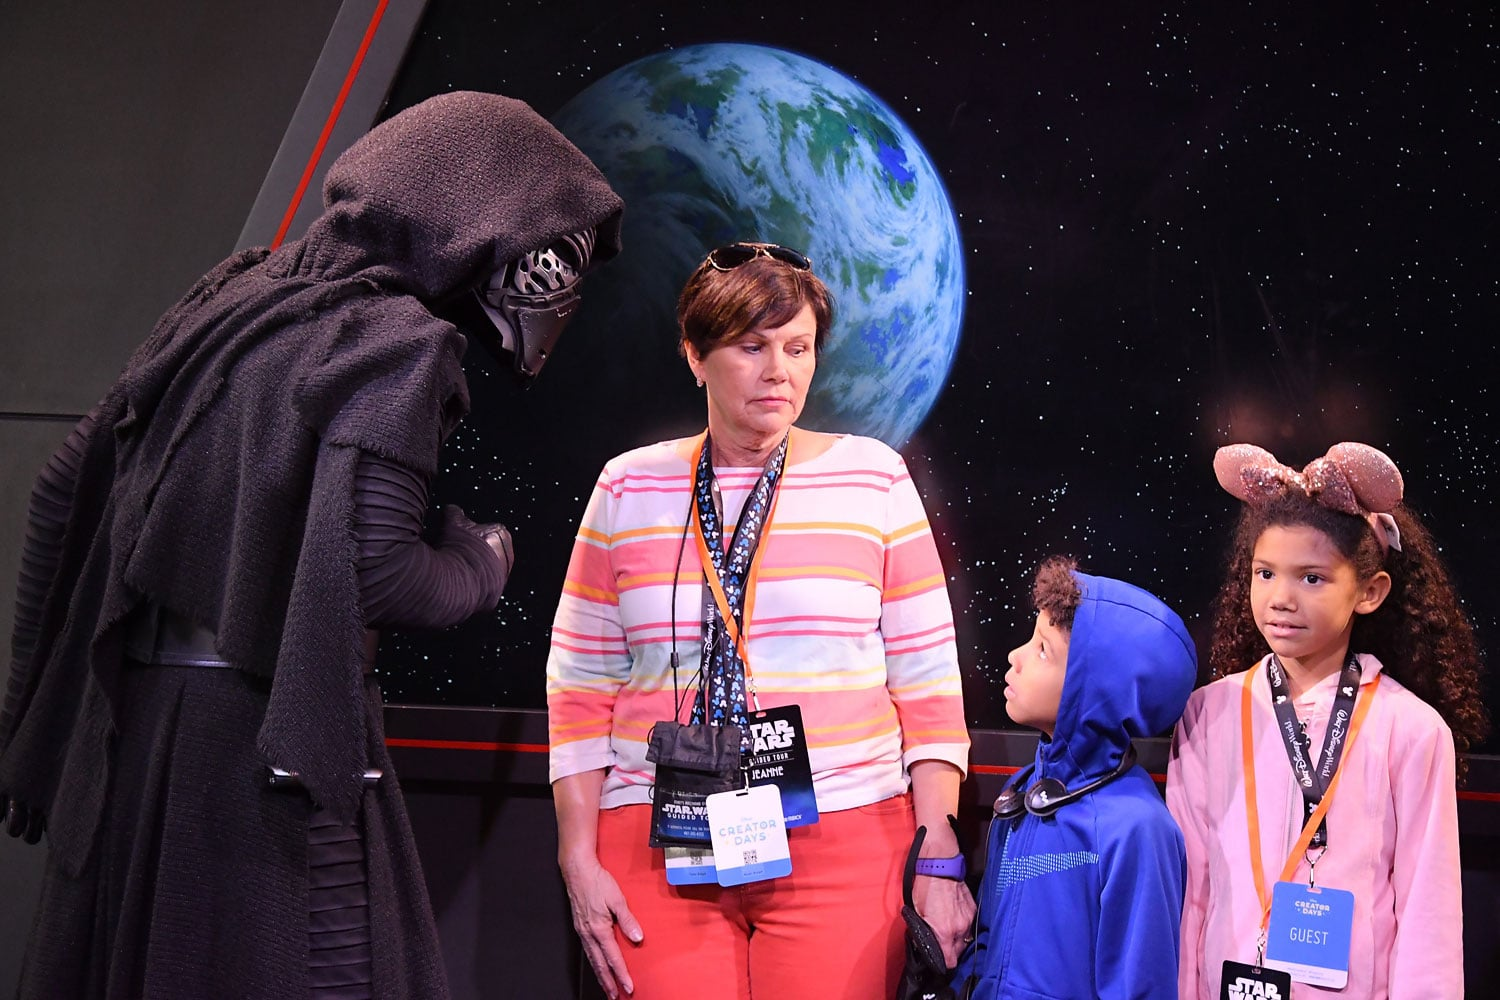 Family meets Kylo Ren on the Star Wars Guided Tour at Disney's Hollywood Studios